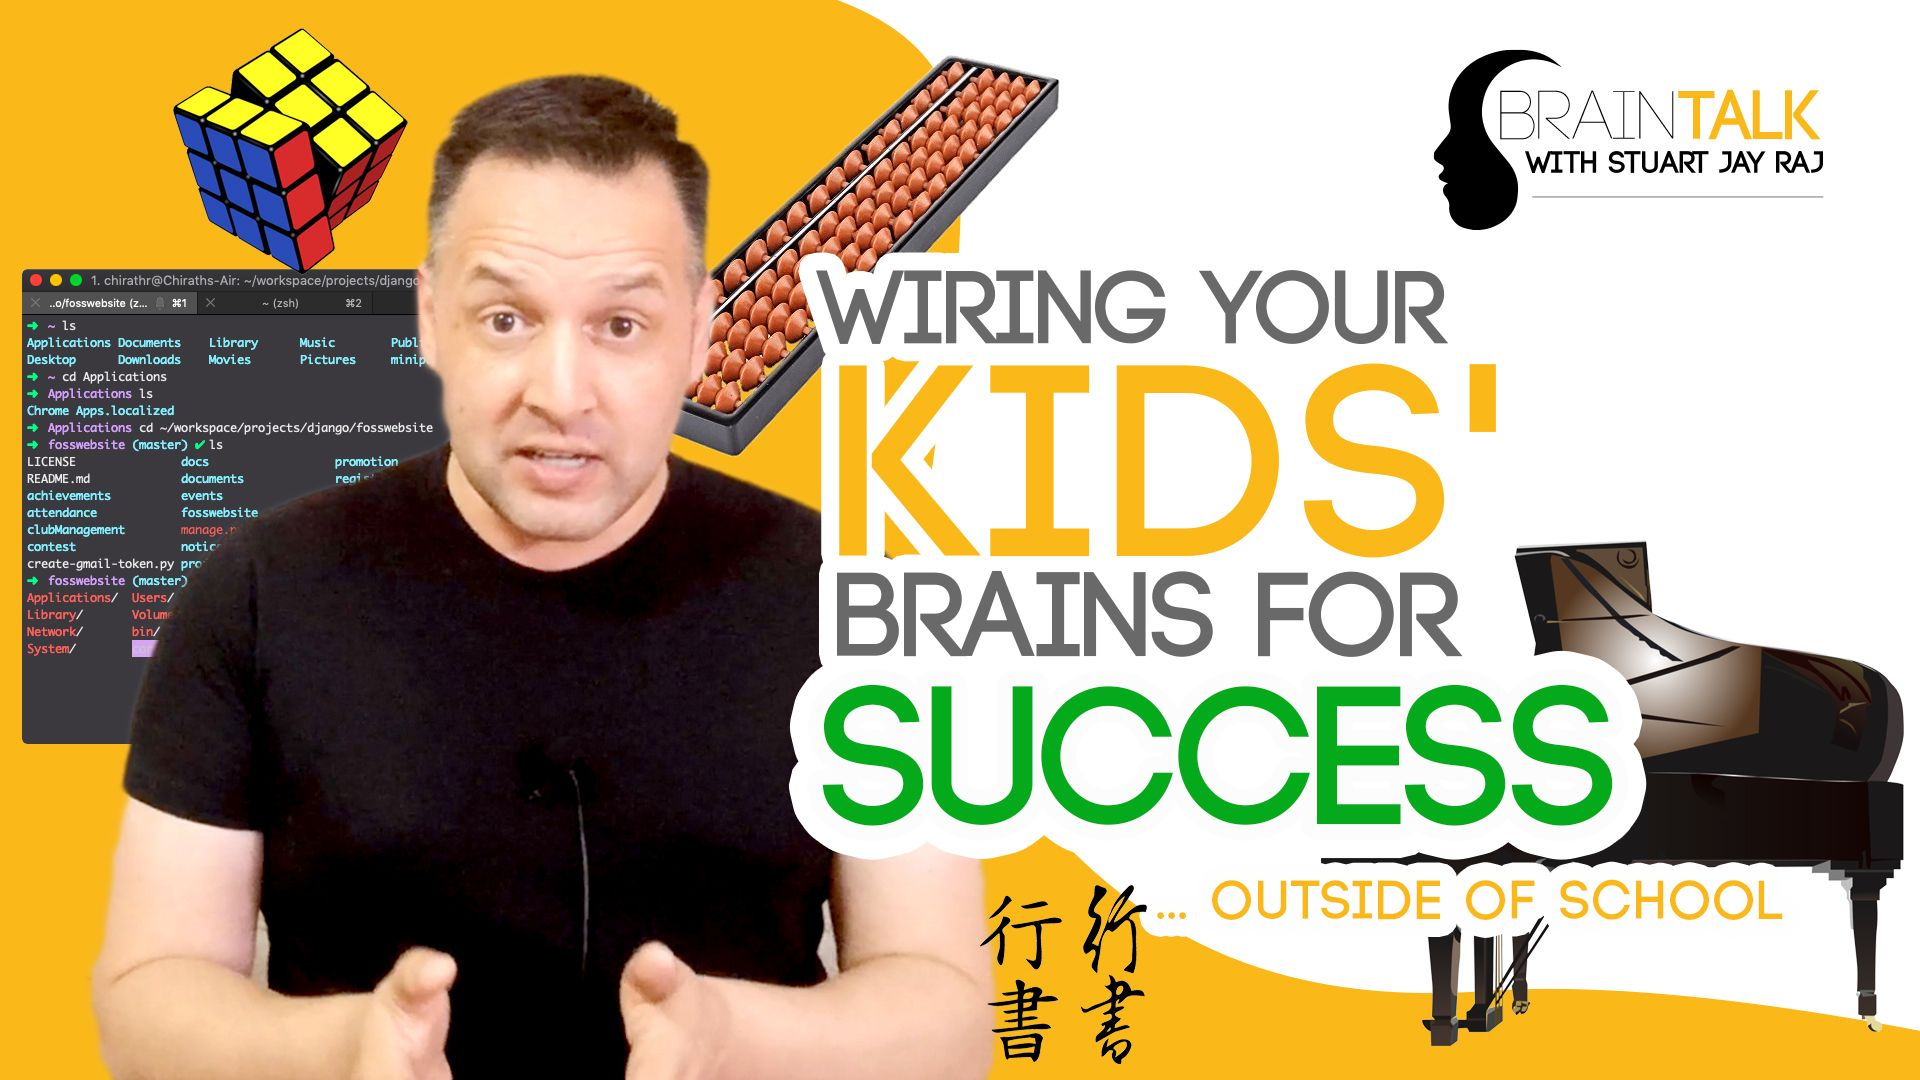 BrainTalk - Wiring Your Kids' Brains for Success - Is there Need for School Anymore?